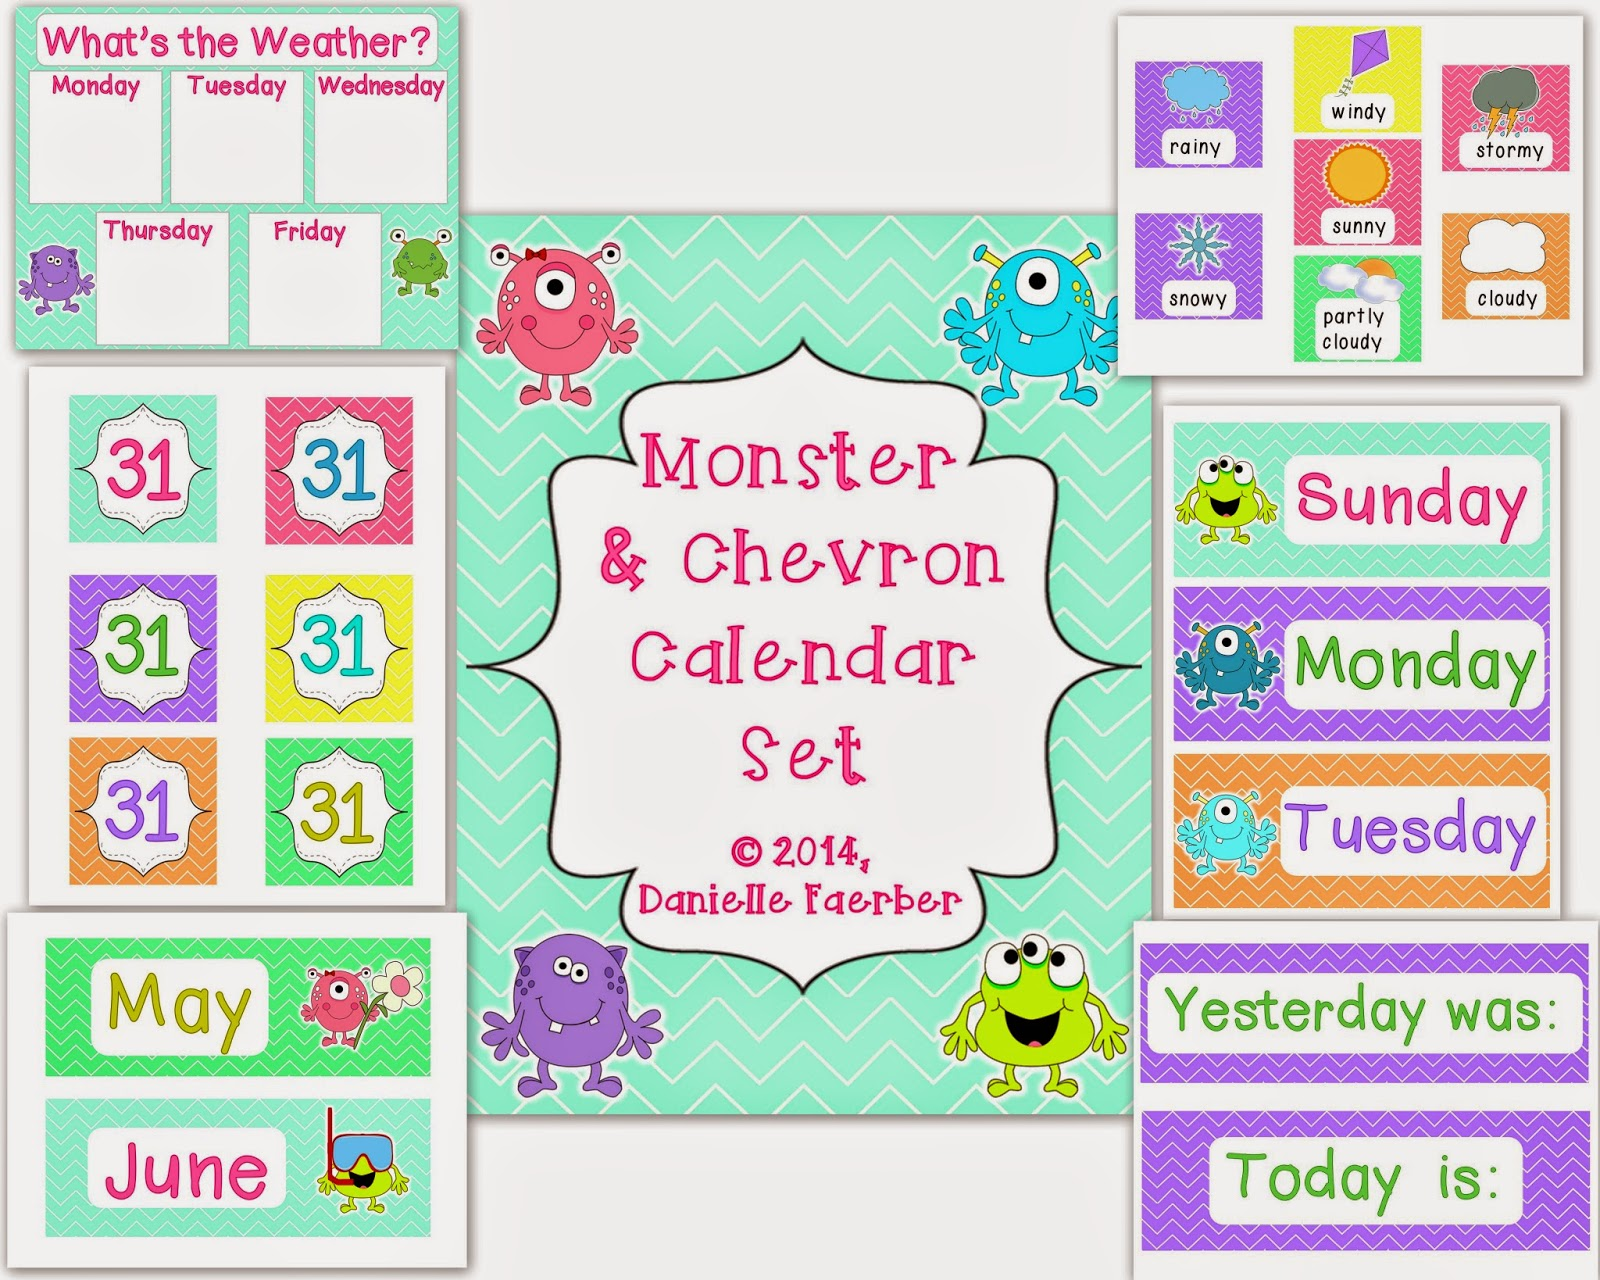 http://www.teacherspayteachers.com/Product/Monster-and-Chevron-Calendar-and-Weather-Set-1304246